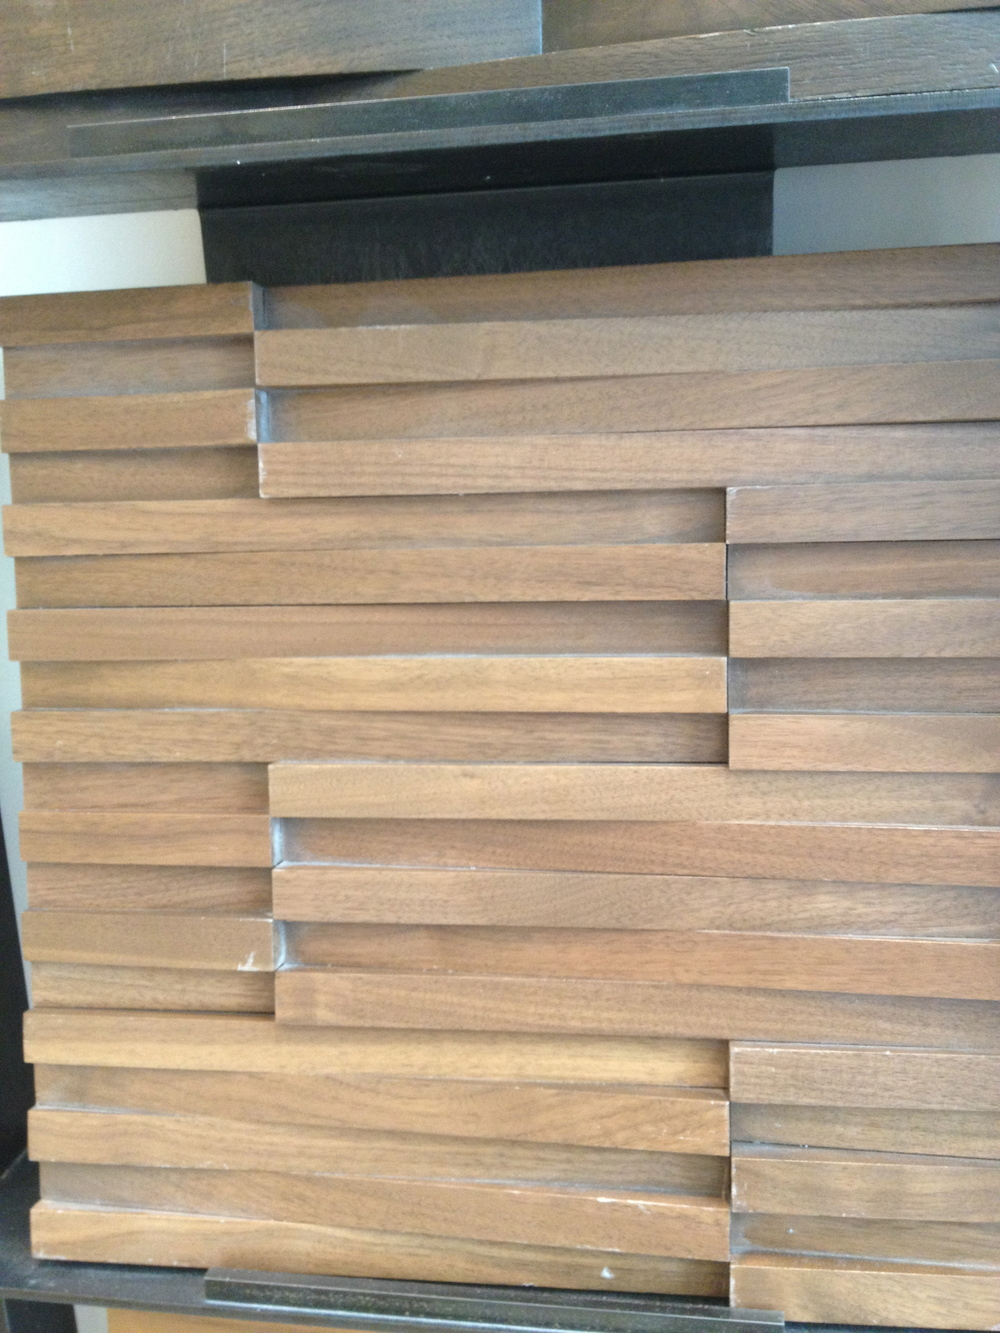 I'm dying for the perfect project to use these wood tiles.  Walker Zanger has a fun one too.  www.saranobledesigns.com